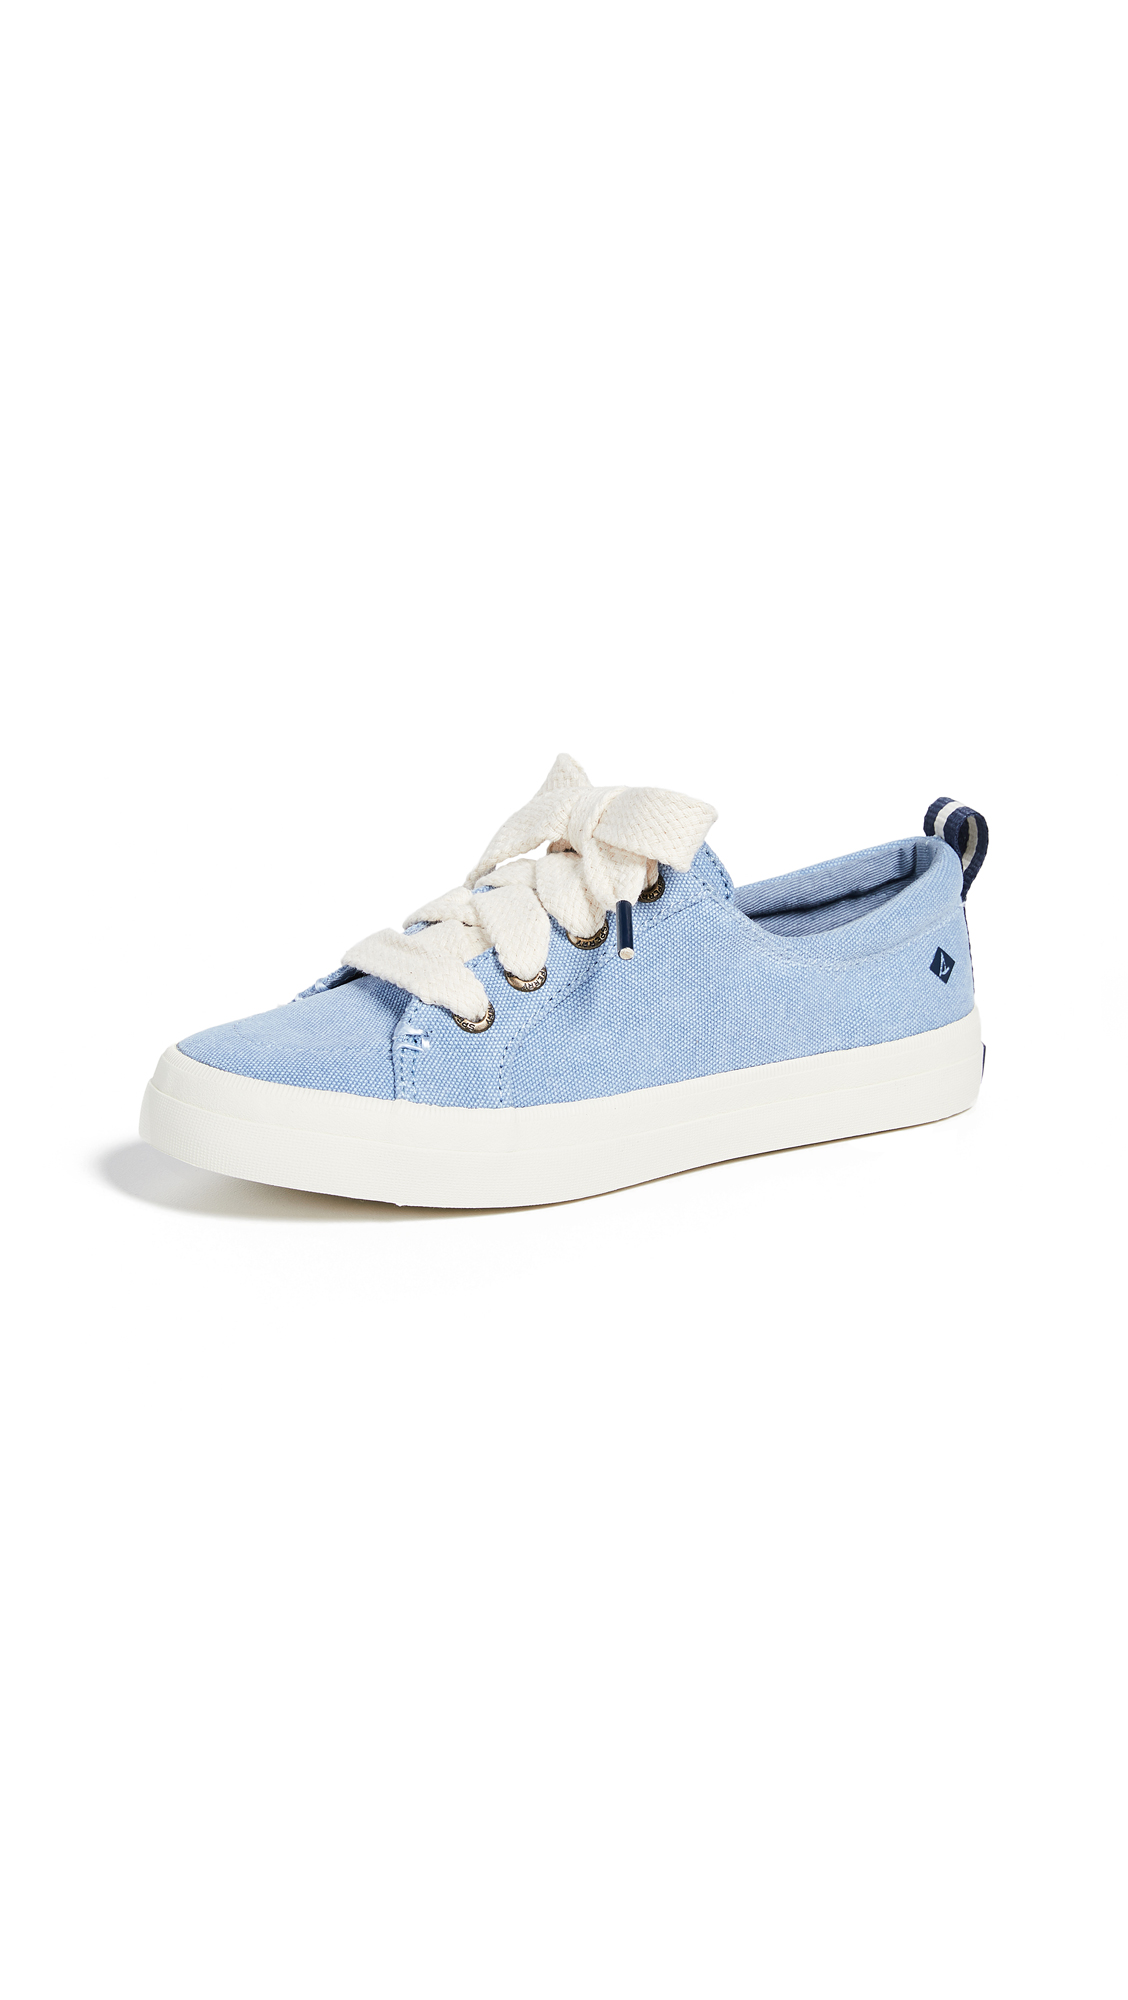 Sperry Crest Vibe Chubby Lace Sneakers - Dusty Blue